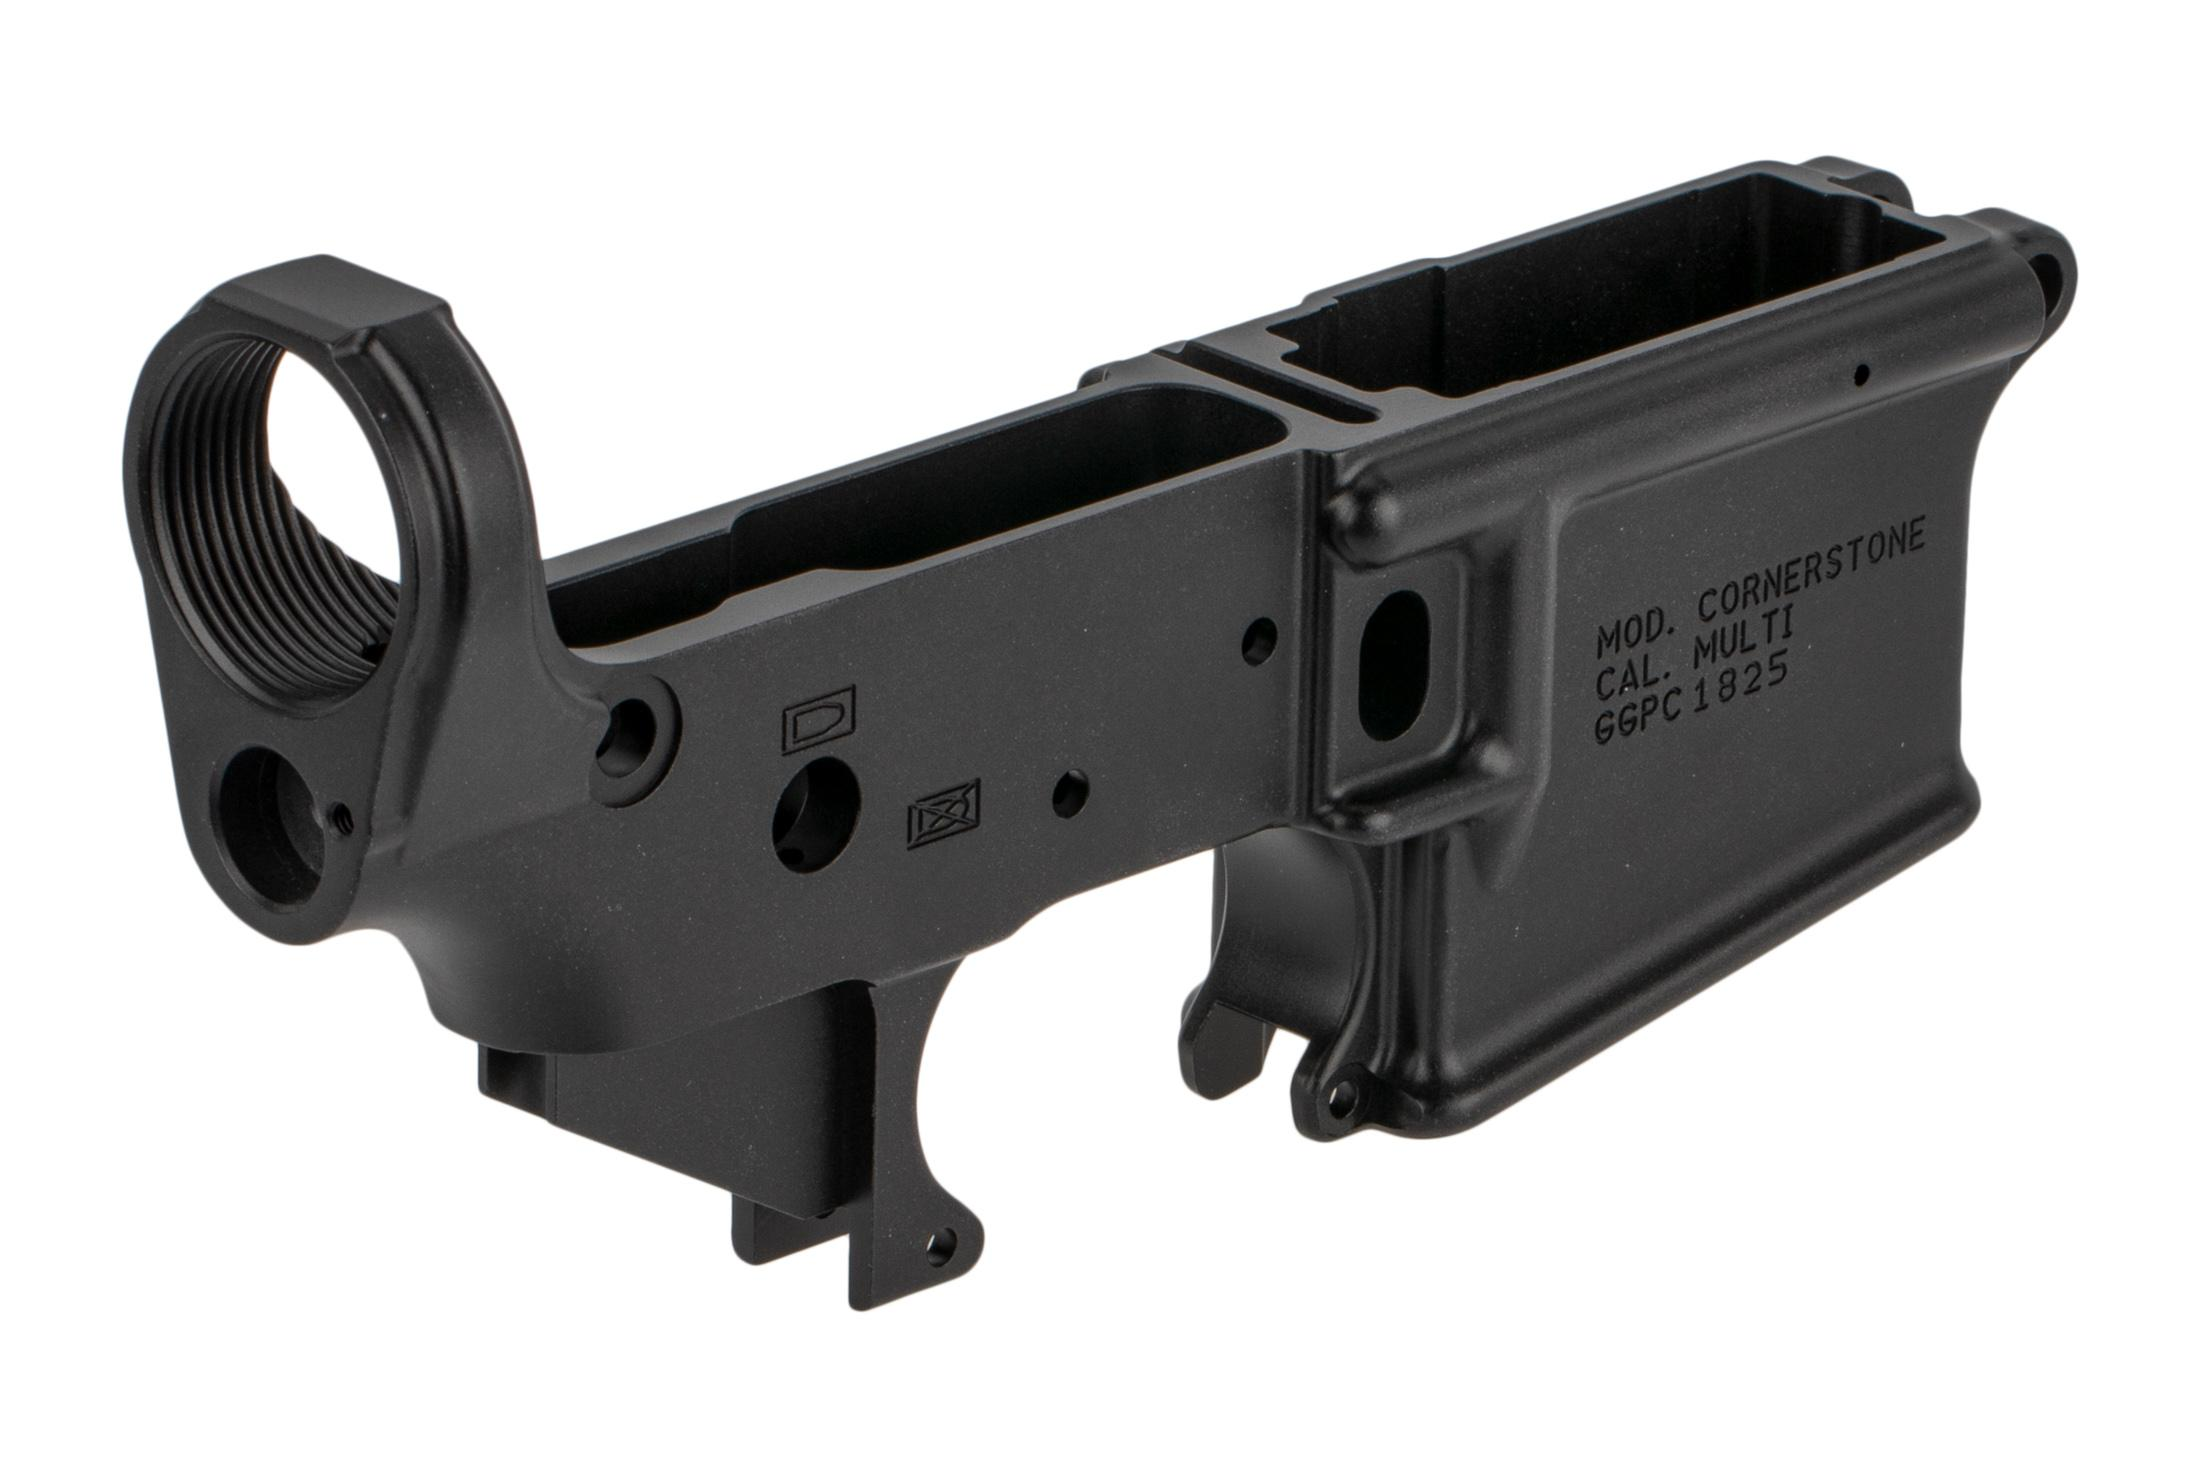 Grey Ghost Precision 7075-T6 aluminum forged lower receiver is machined to 0.001 tolerances for exceptional precision